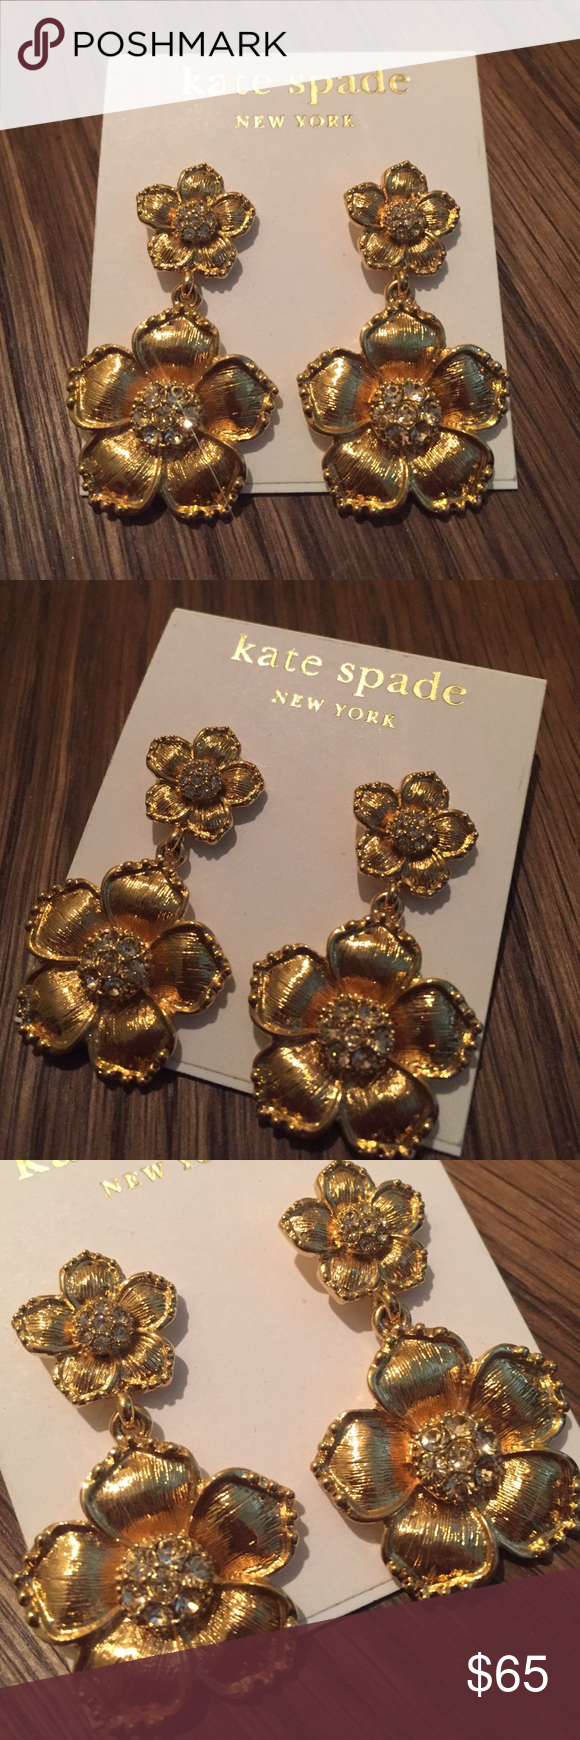 Kate Spade Gold Floral Earrings Ever Worn - Brand New kate spade Jewelry Earrings